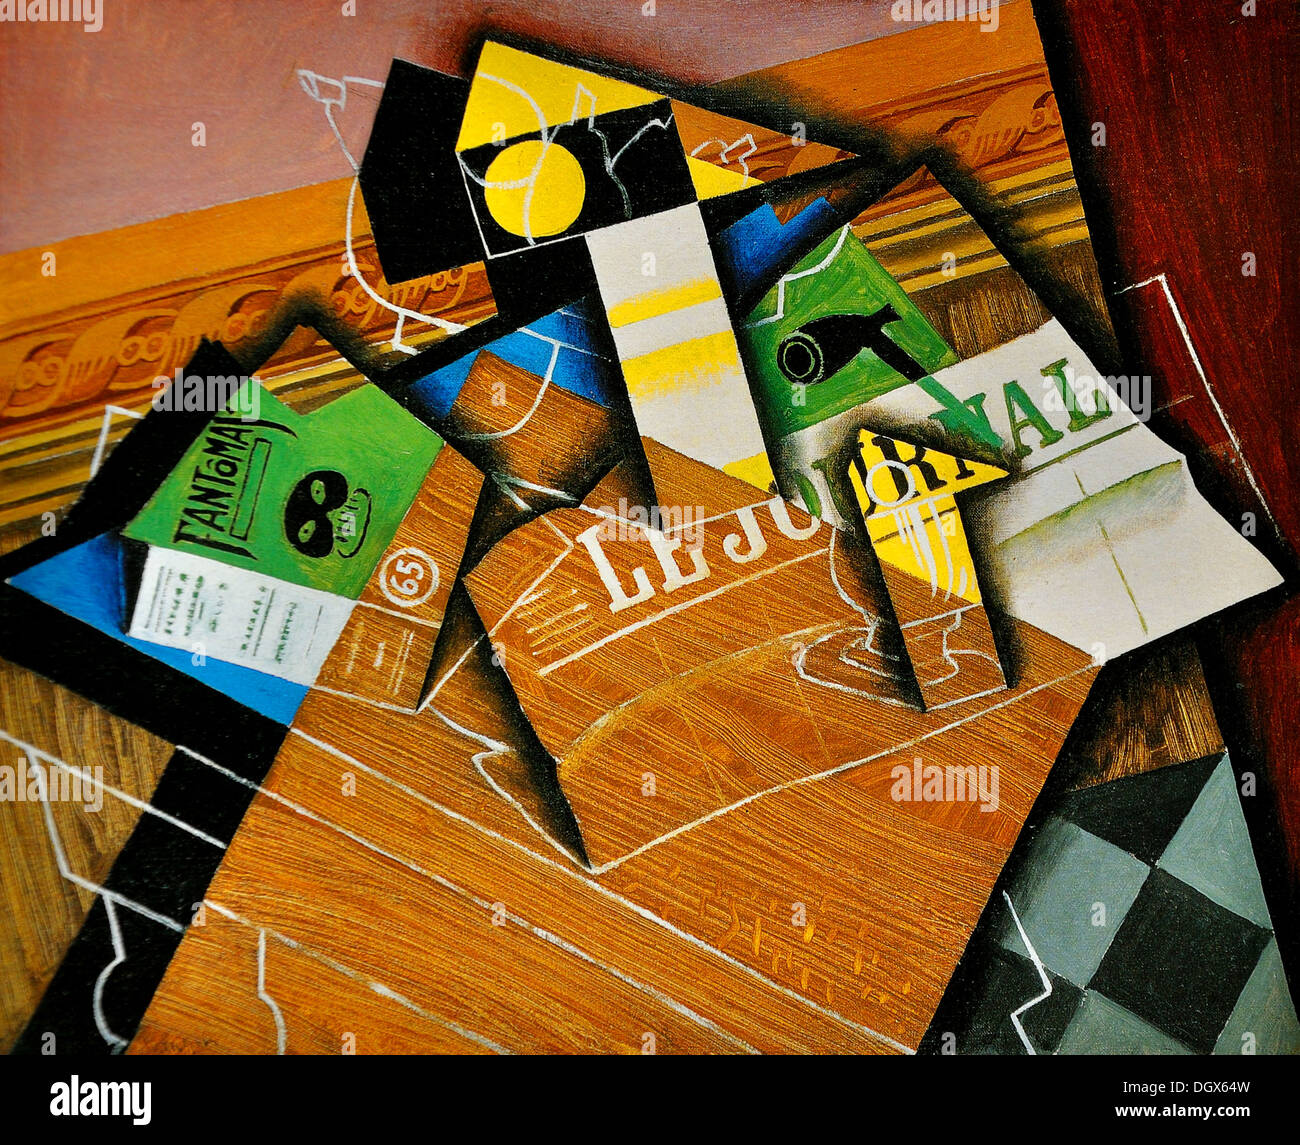 Fantomas (Pipe And Newspaper) - by Juan Gris, 1915 - Stock Image